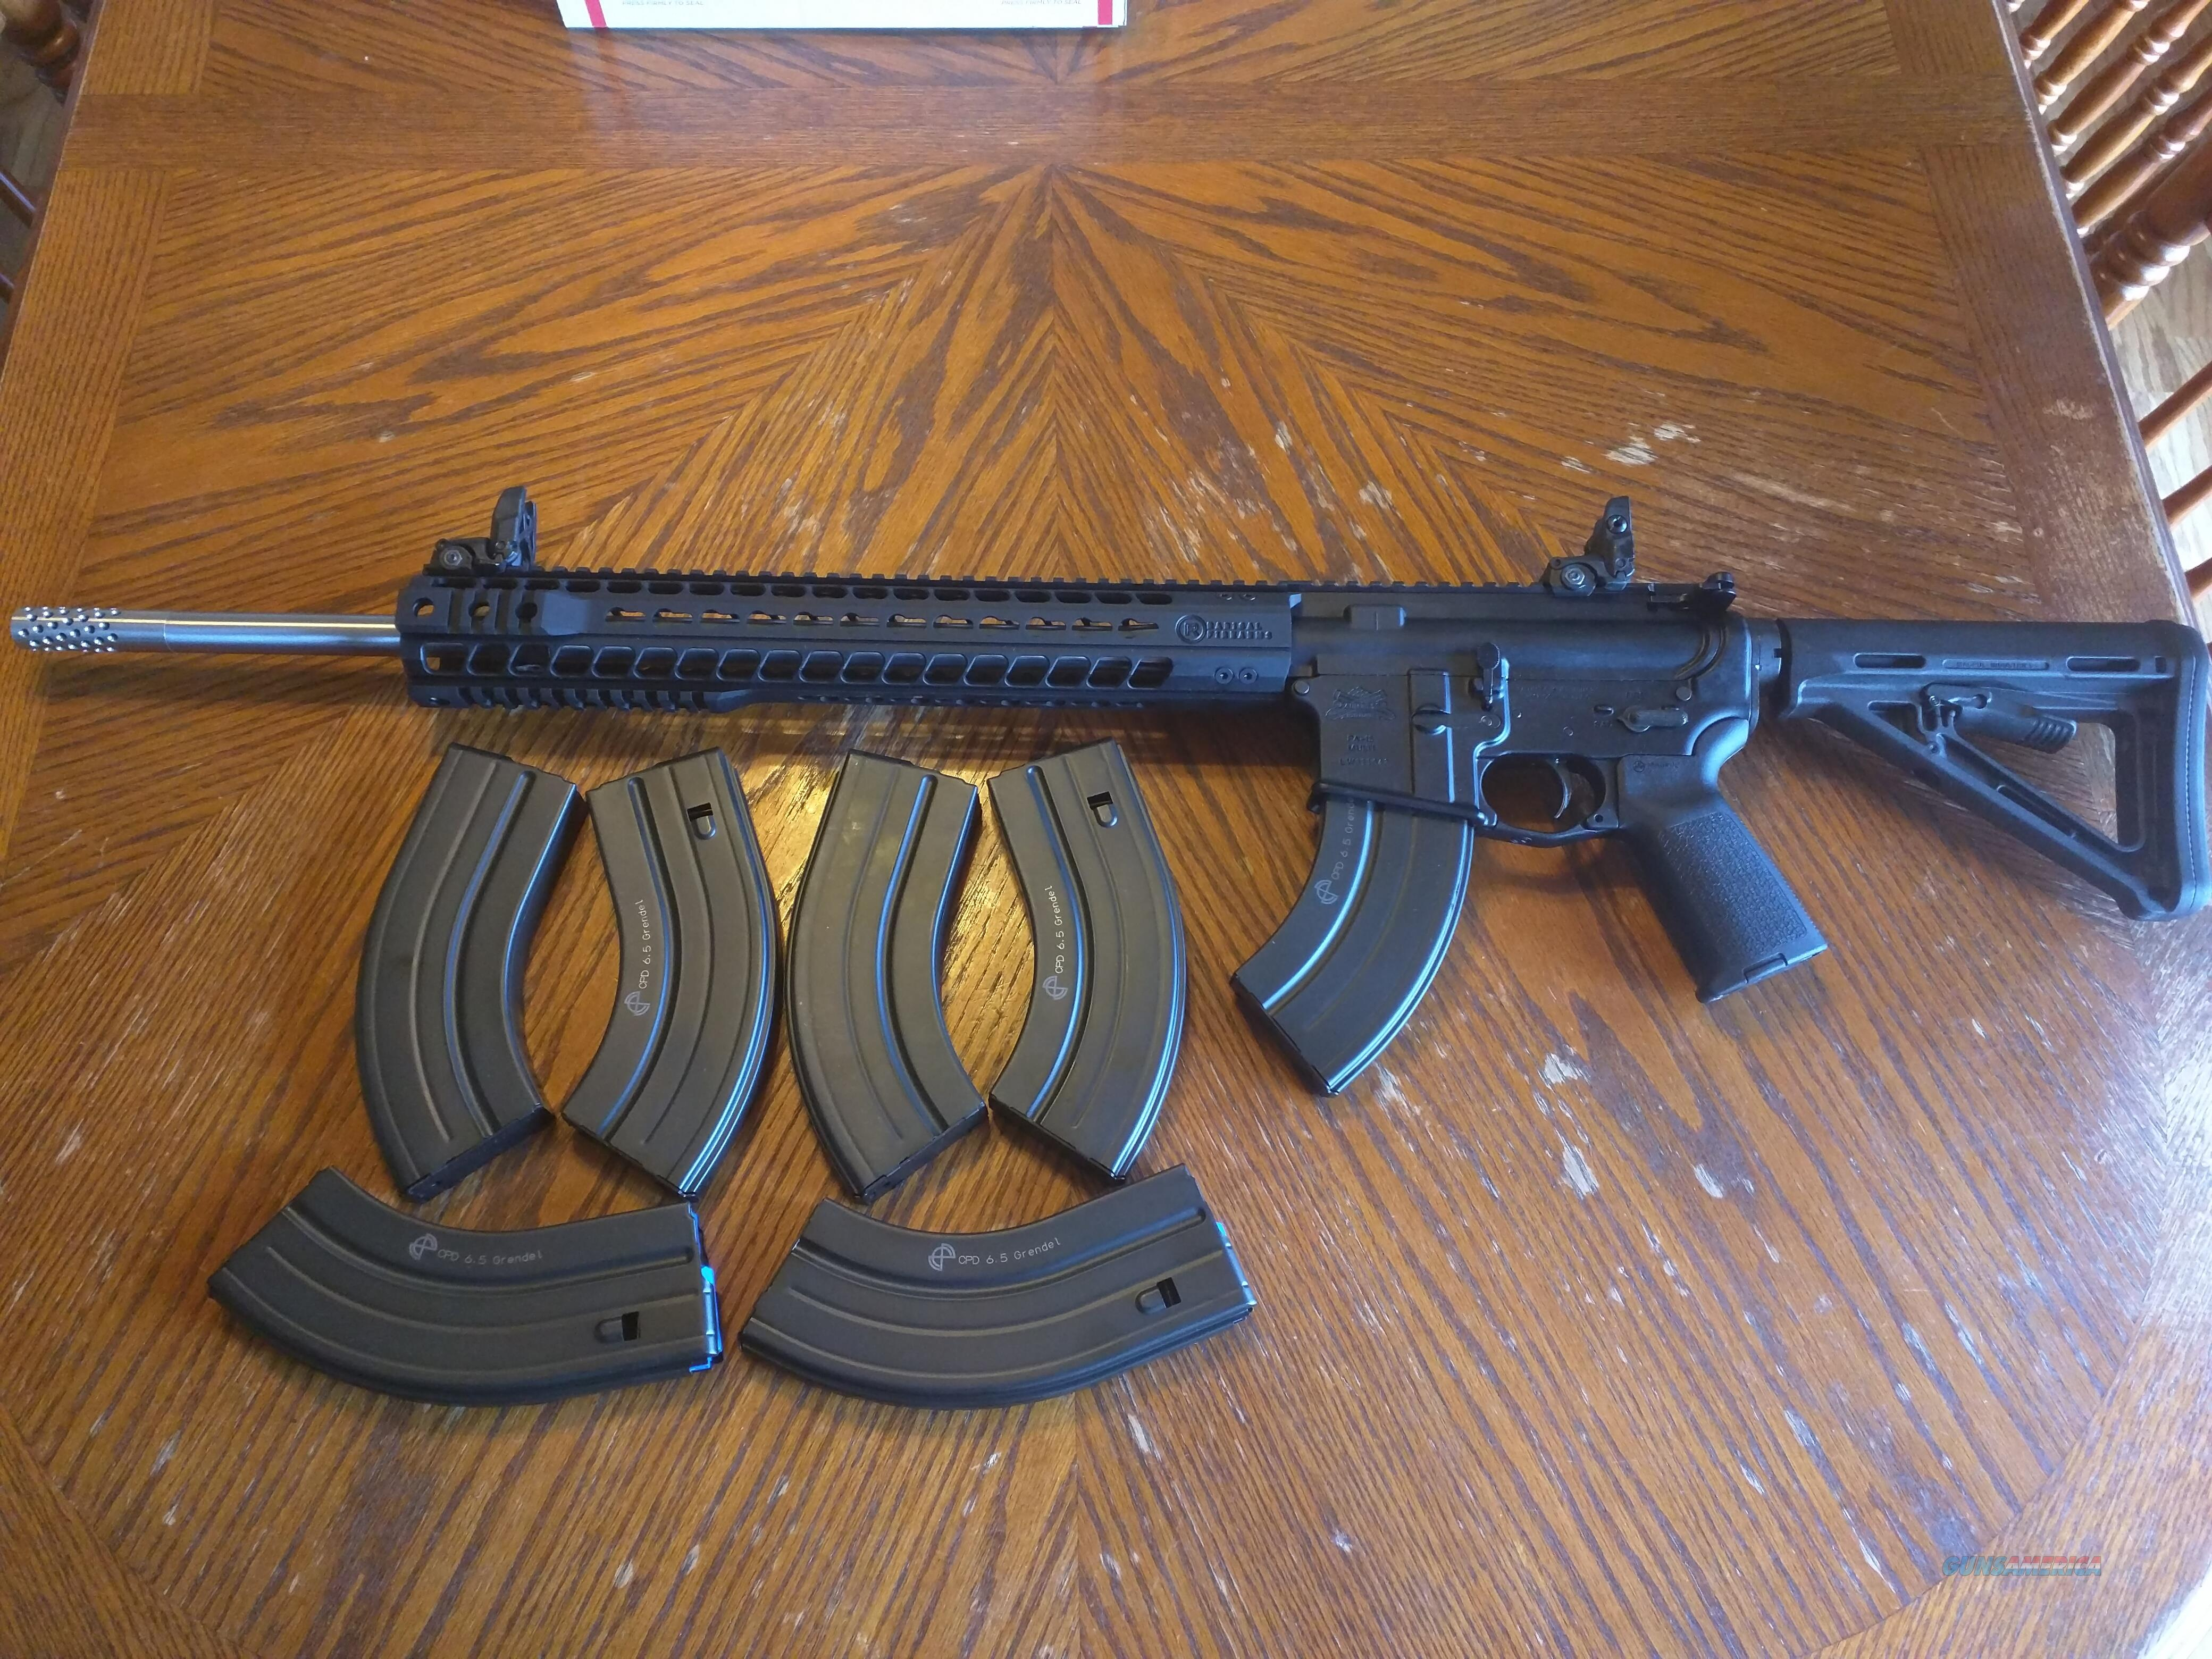 Radical Firearms AR15 AR 15 6 5 Grendel NEW, PSA Lower Magpul Stock and  Grip, Magpul MBUS Flip Up Si